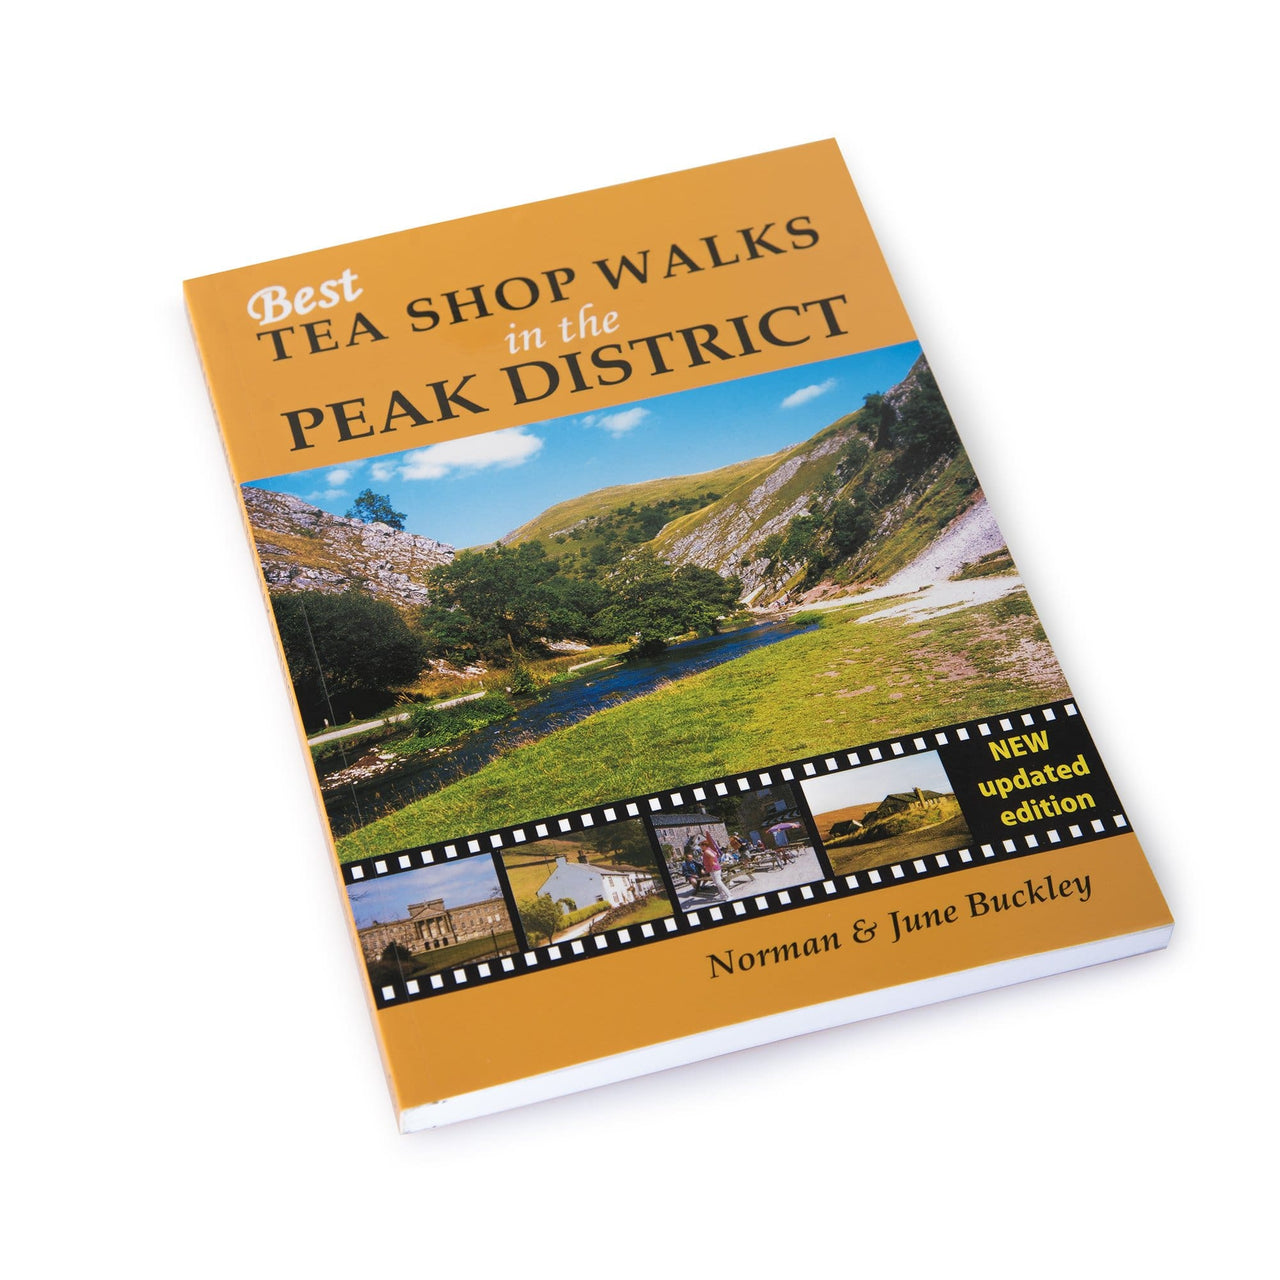 Best Tea Shop Walks in the Peak District